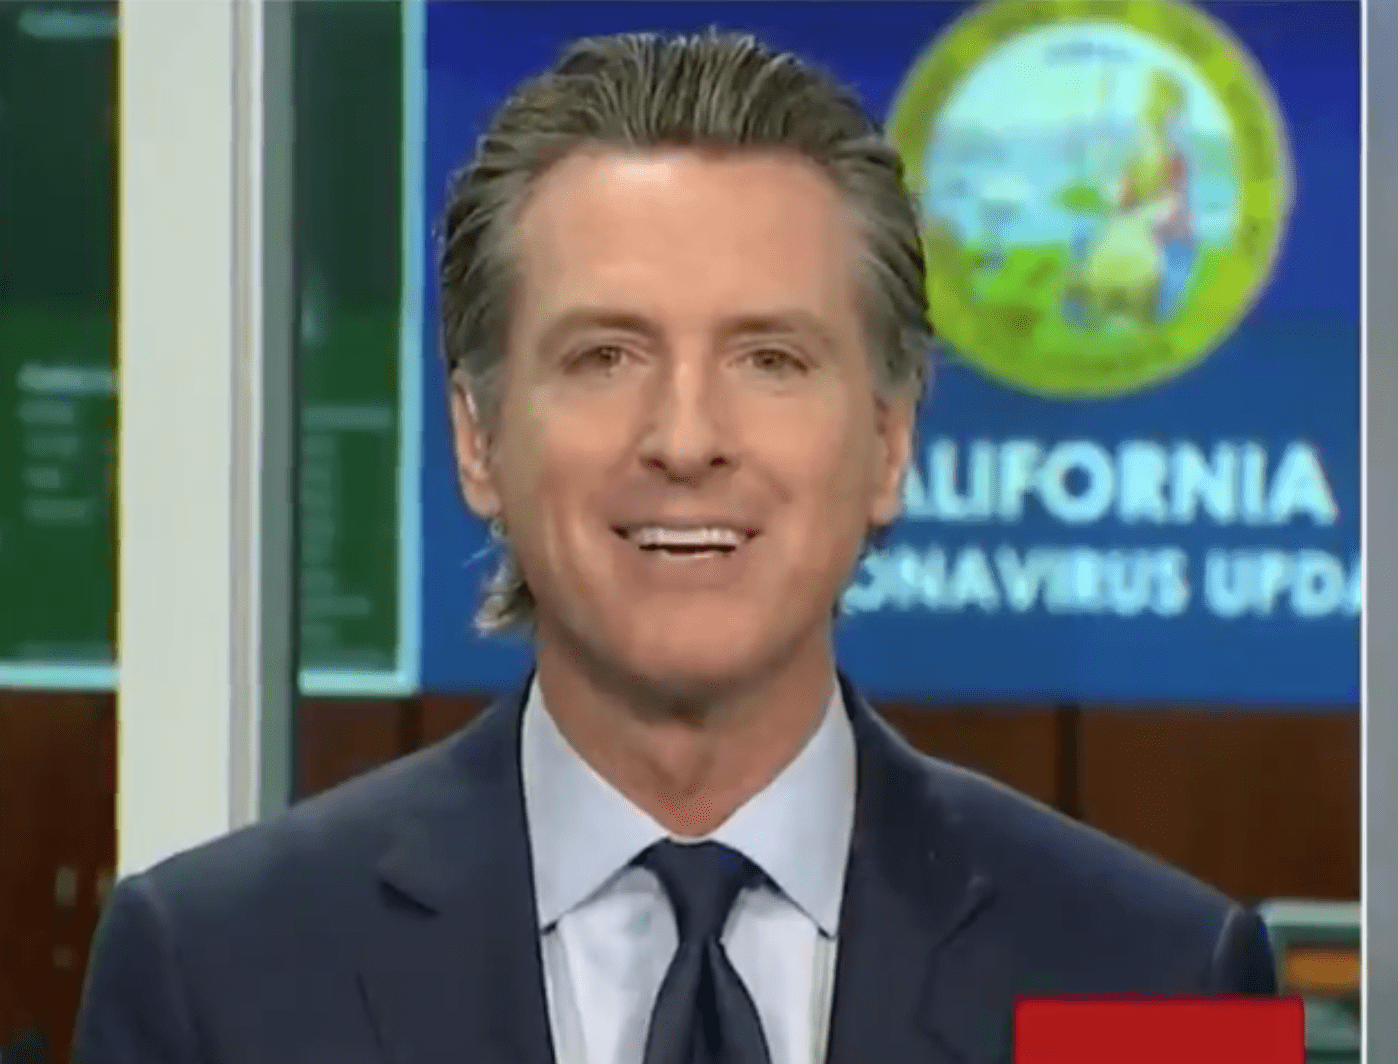 California governor: We need federal funds or emergency responders are the first to go